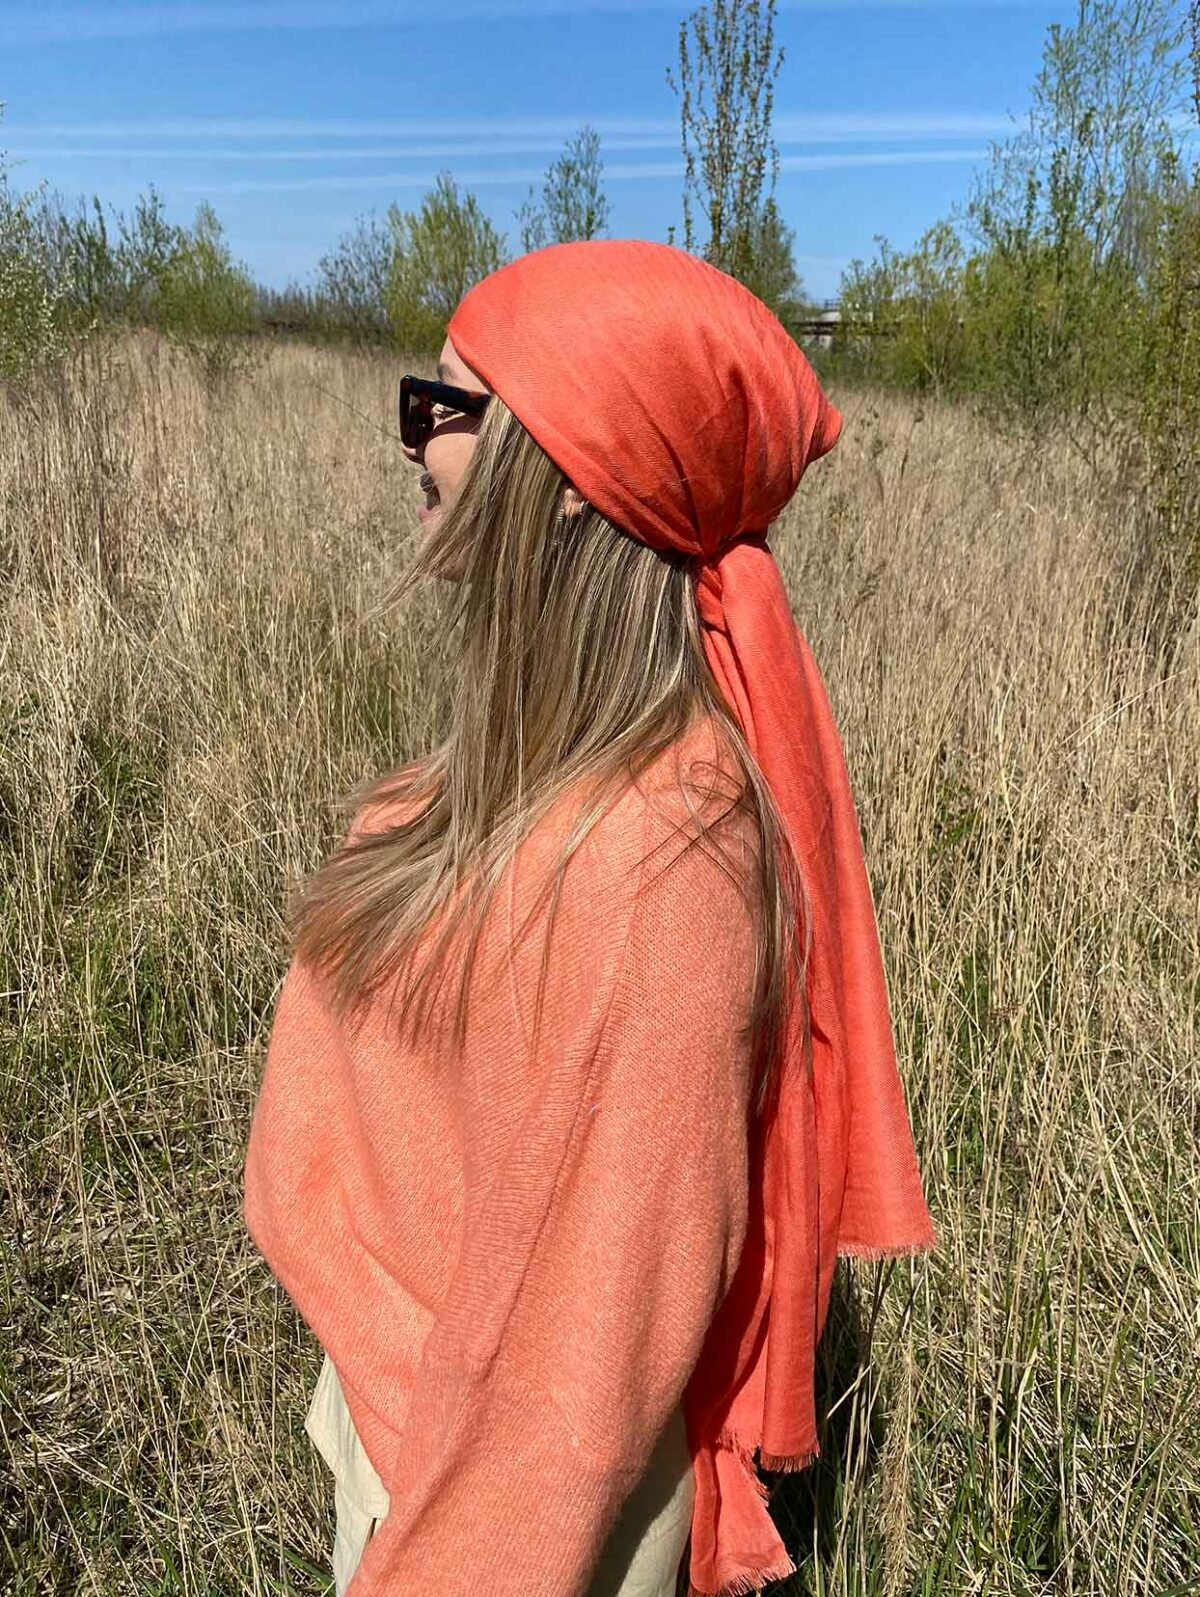 woman with a mandarin knitted sweater and a orange scarf on her head